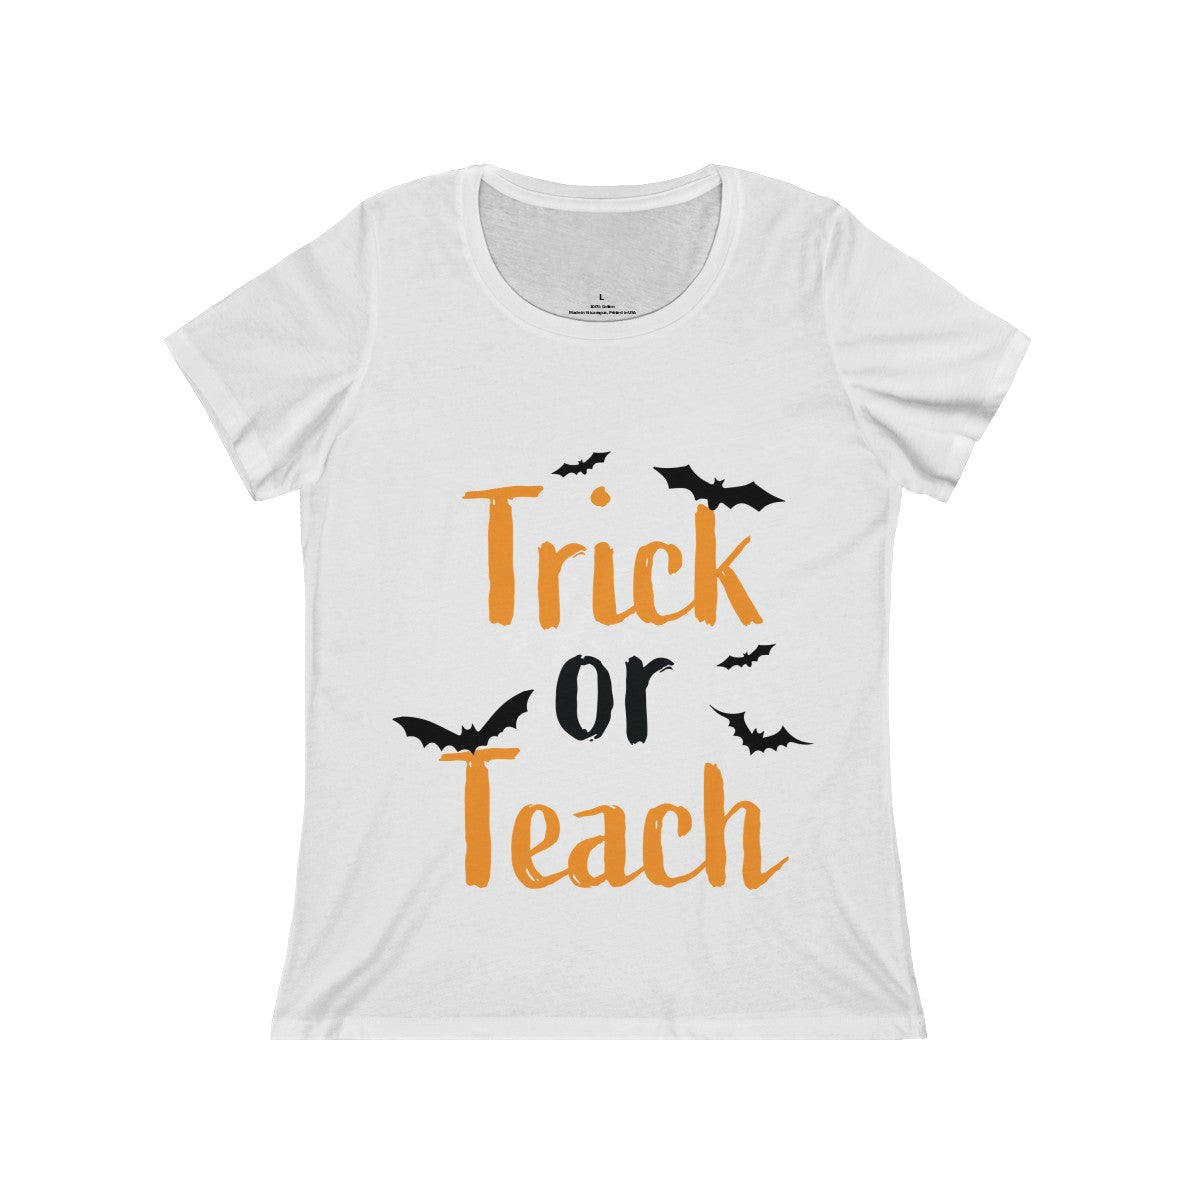 Women's Relaxed Jersey Short Sleeve Scoop Neck Tee - Trick or Teach